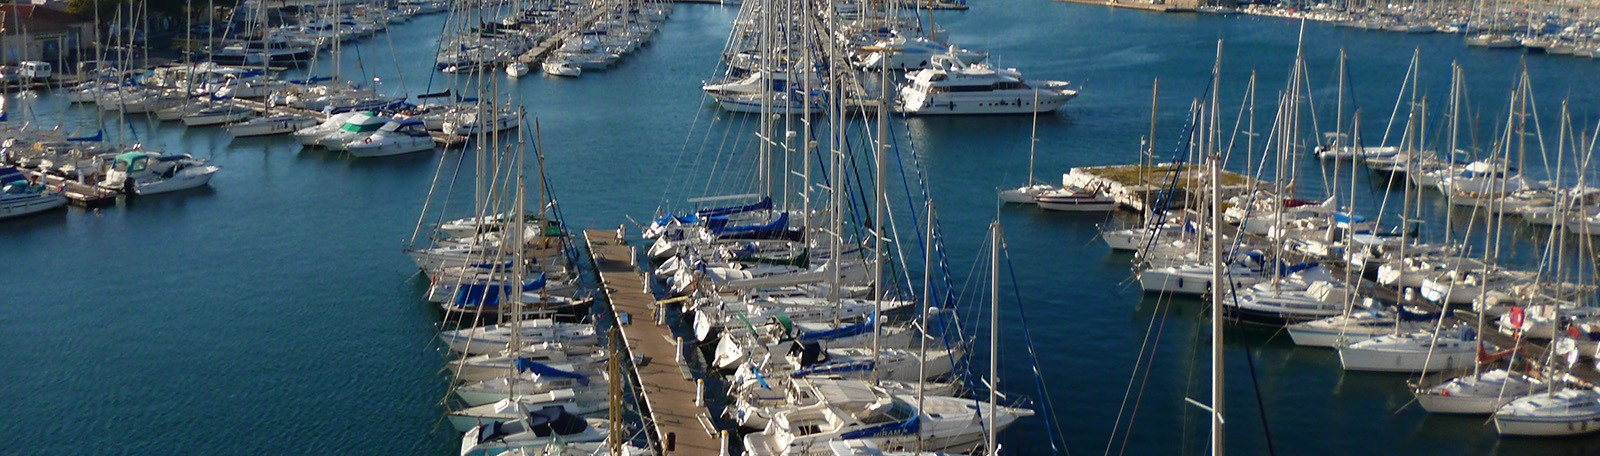 Parking Place d'Armes Le Port - Parkeren in Toulon | Q-Park